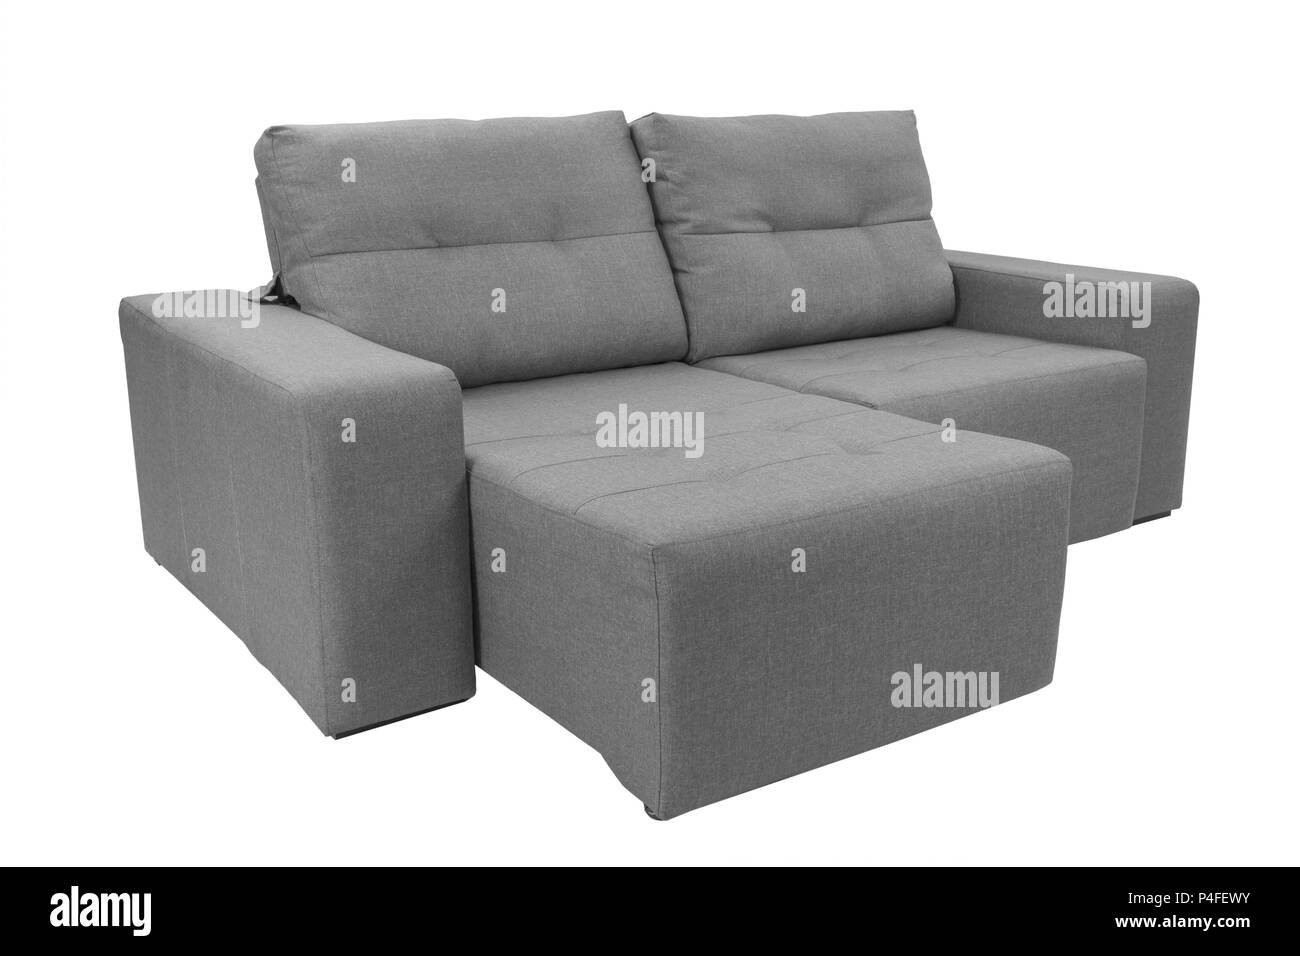 Three seats cozy color fabric sofa isolated on white background - Stock Image